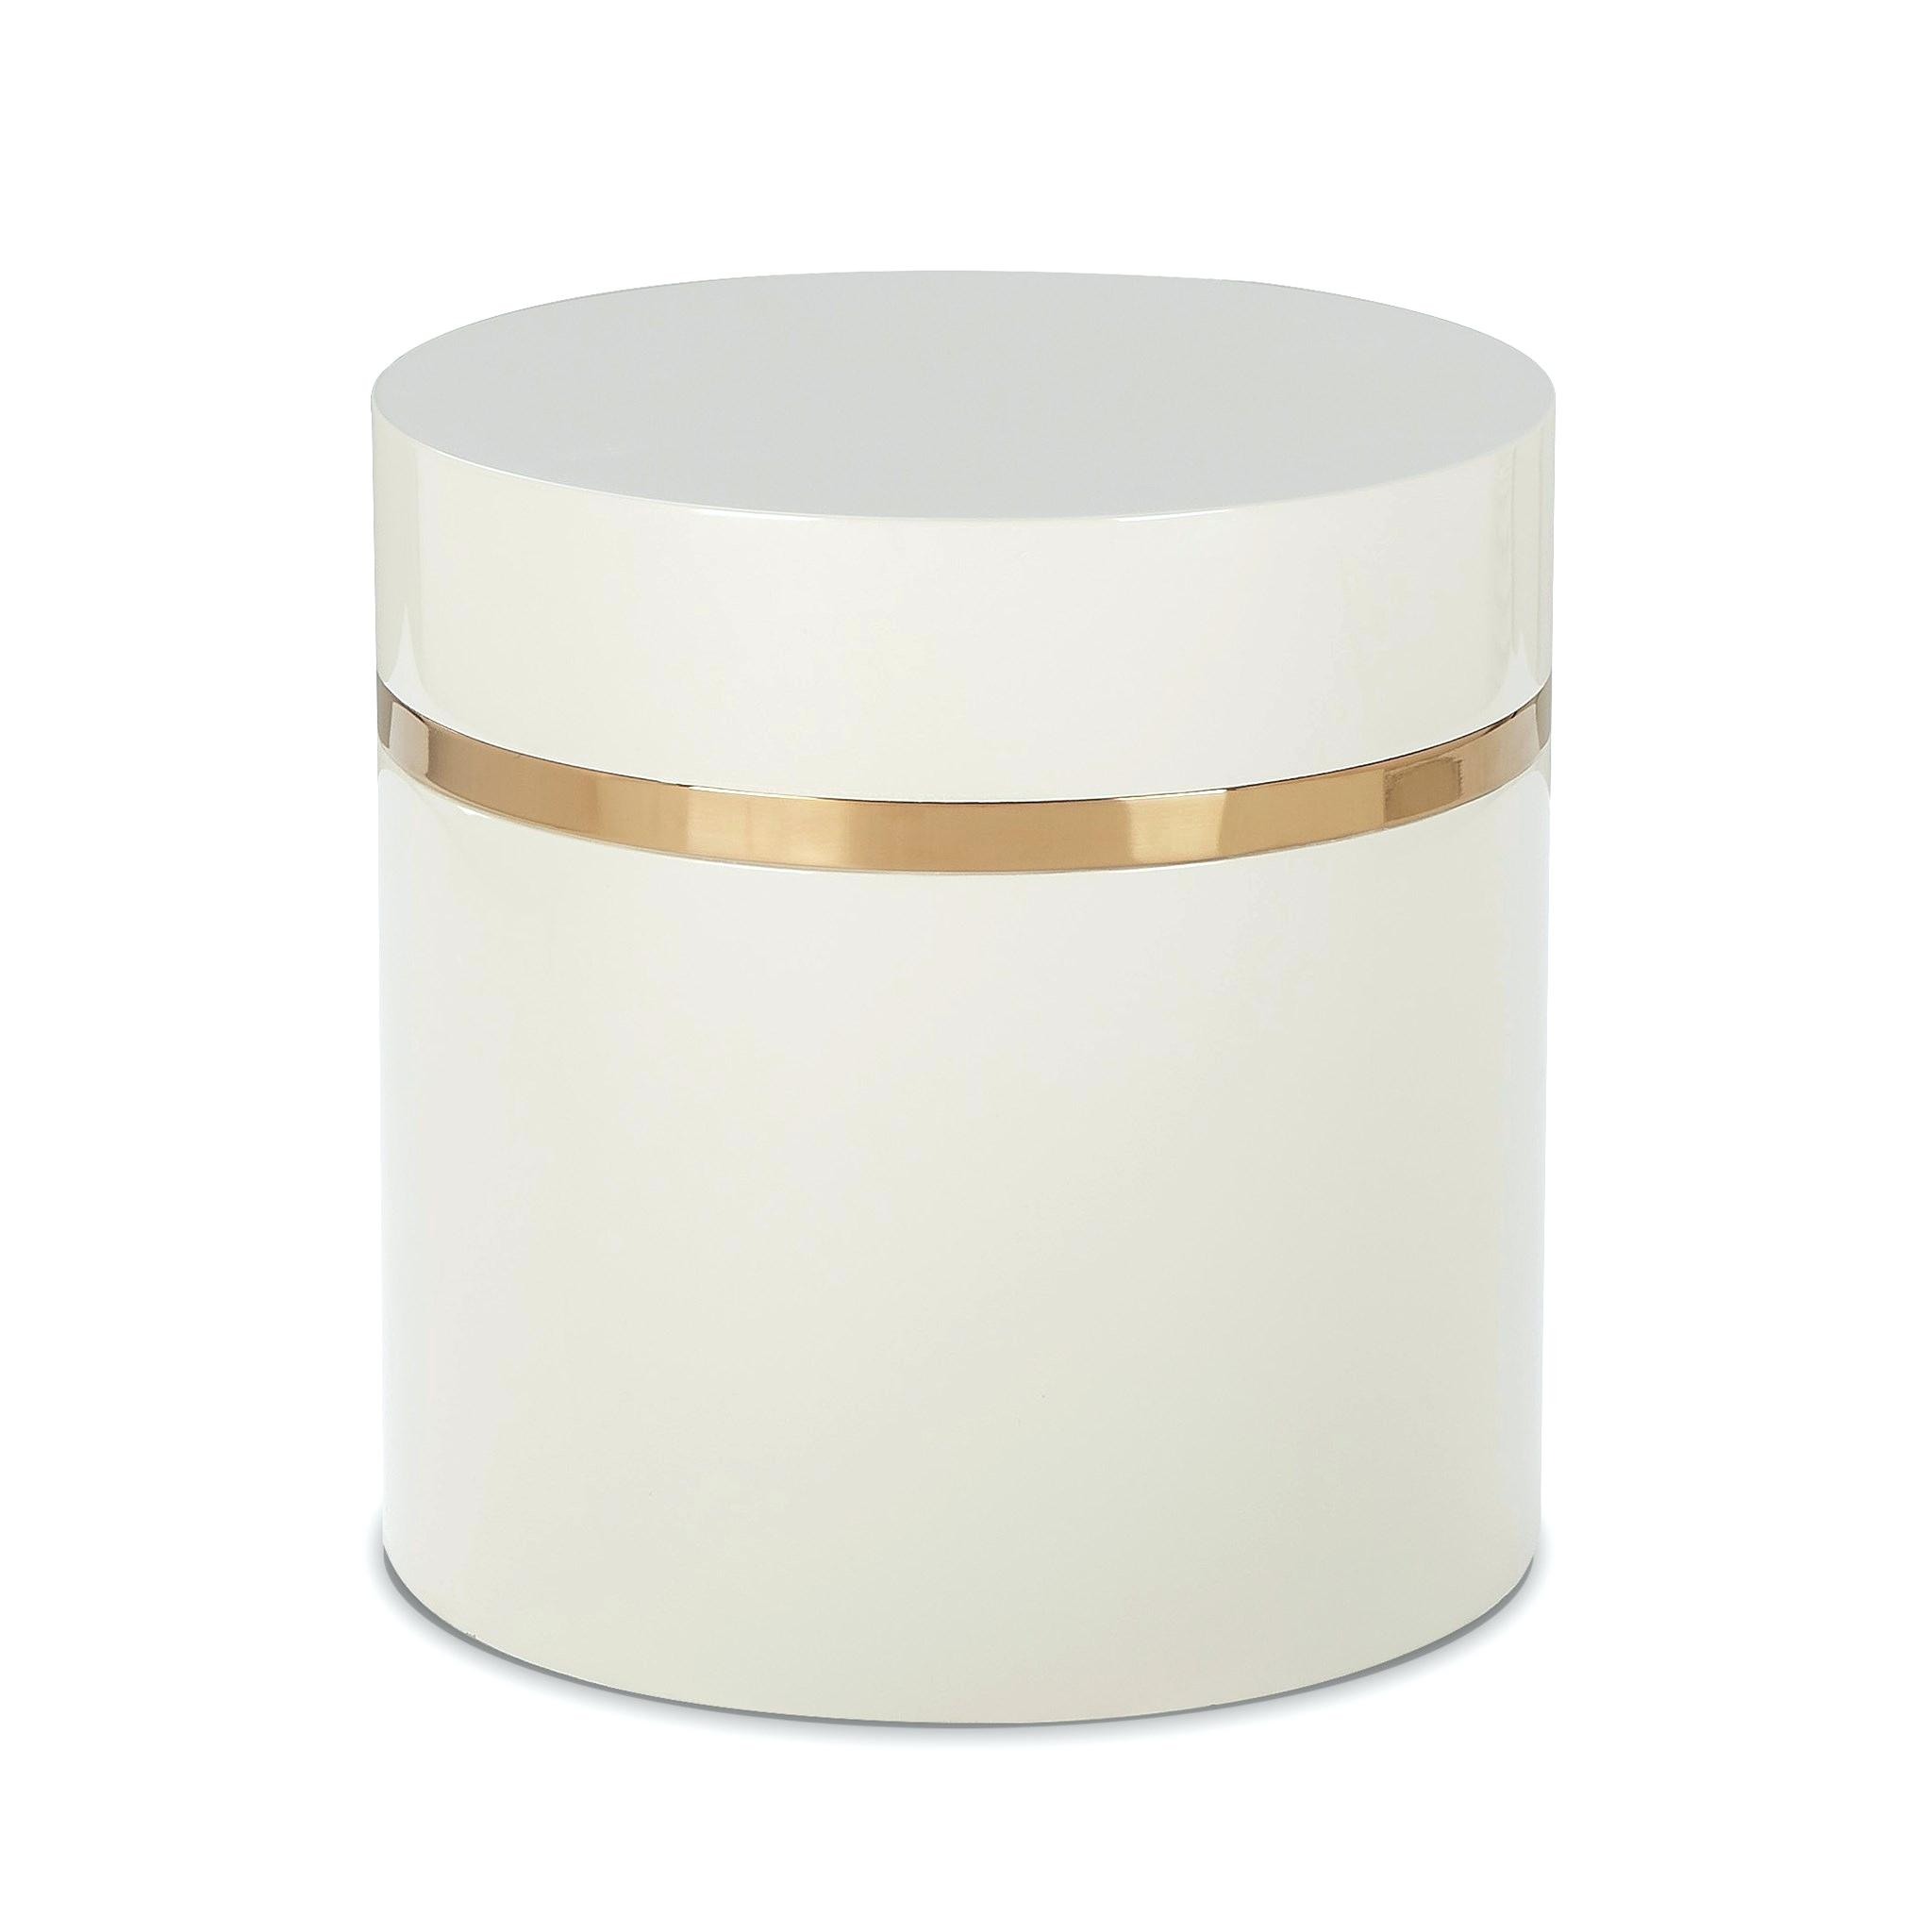 round accent table gold decor ideas small family furniture tables black target side living kitchen exciting hafley full size recliner mainstays coffee cube fancy lamps outdoor